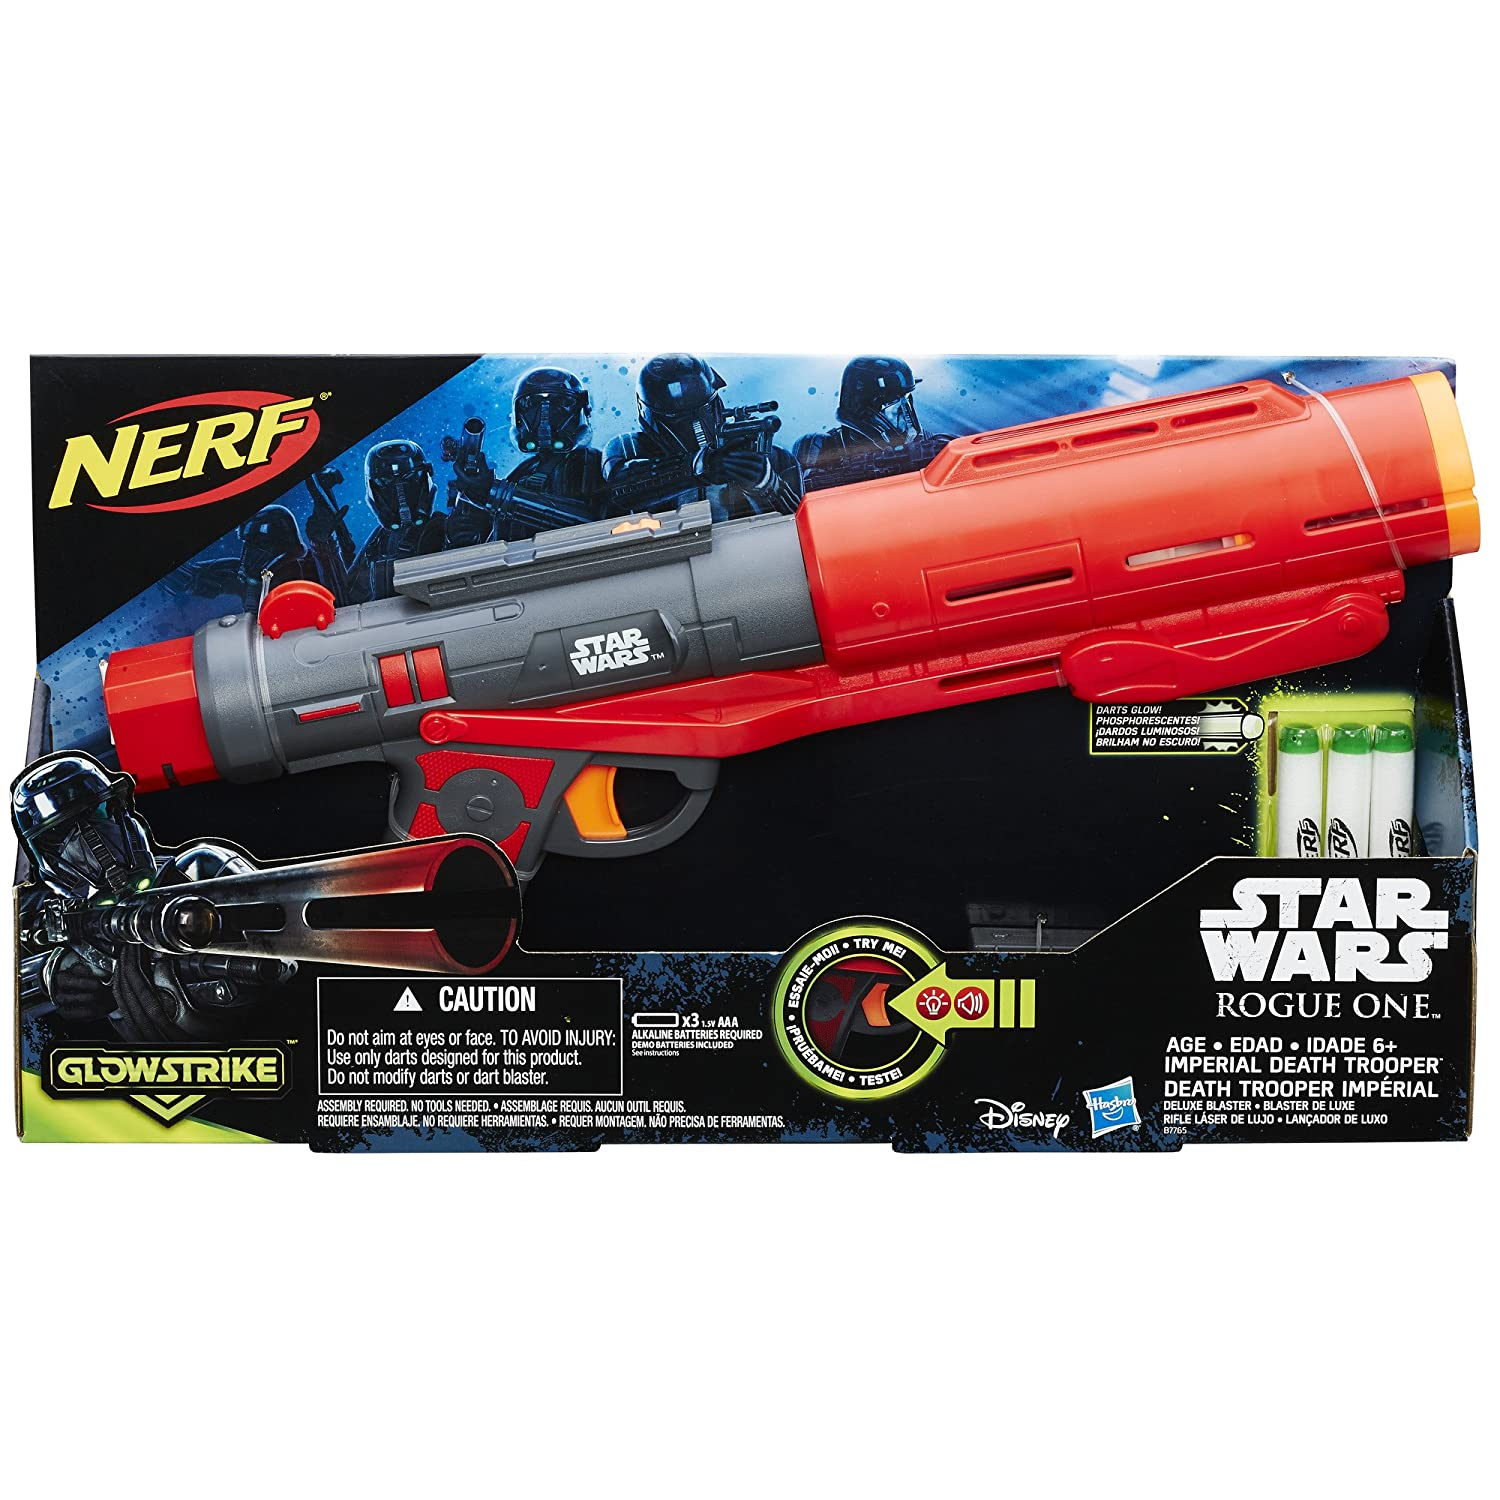 Amazon Star Wars Rogue e Nerf Imperial Death Trooper Deluxe Blaster Toys & Games